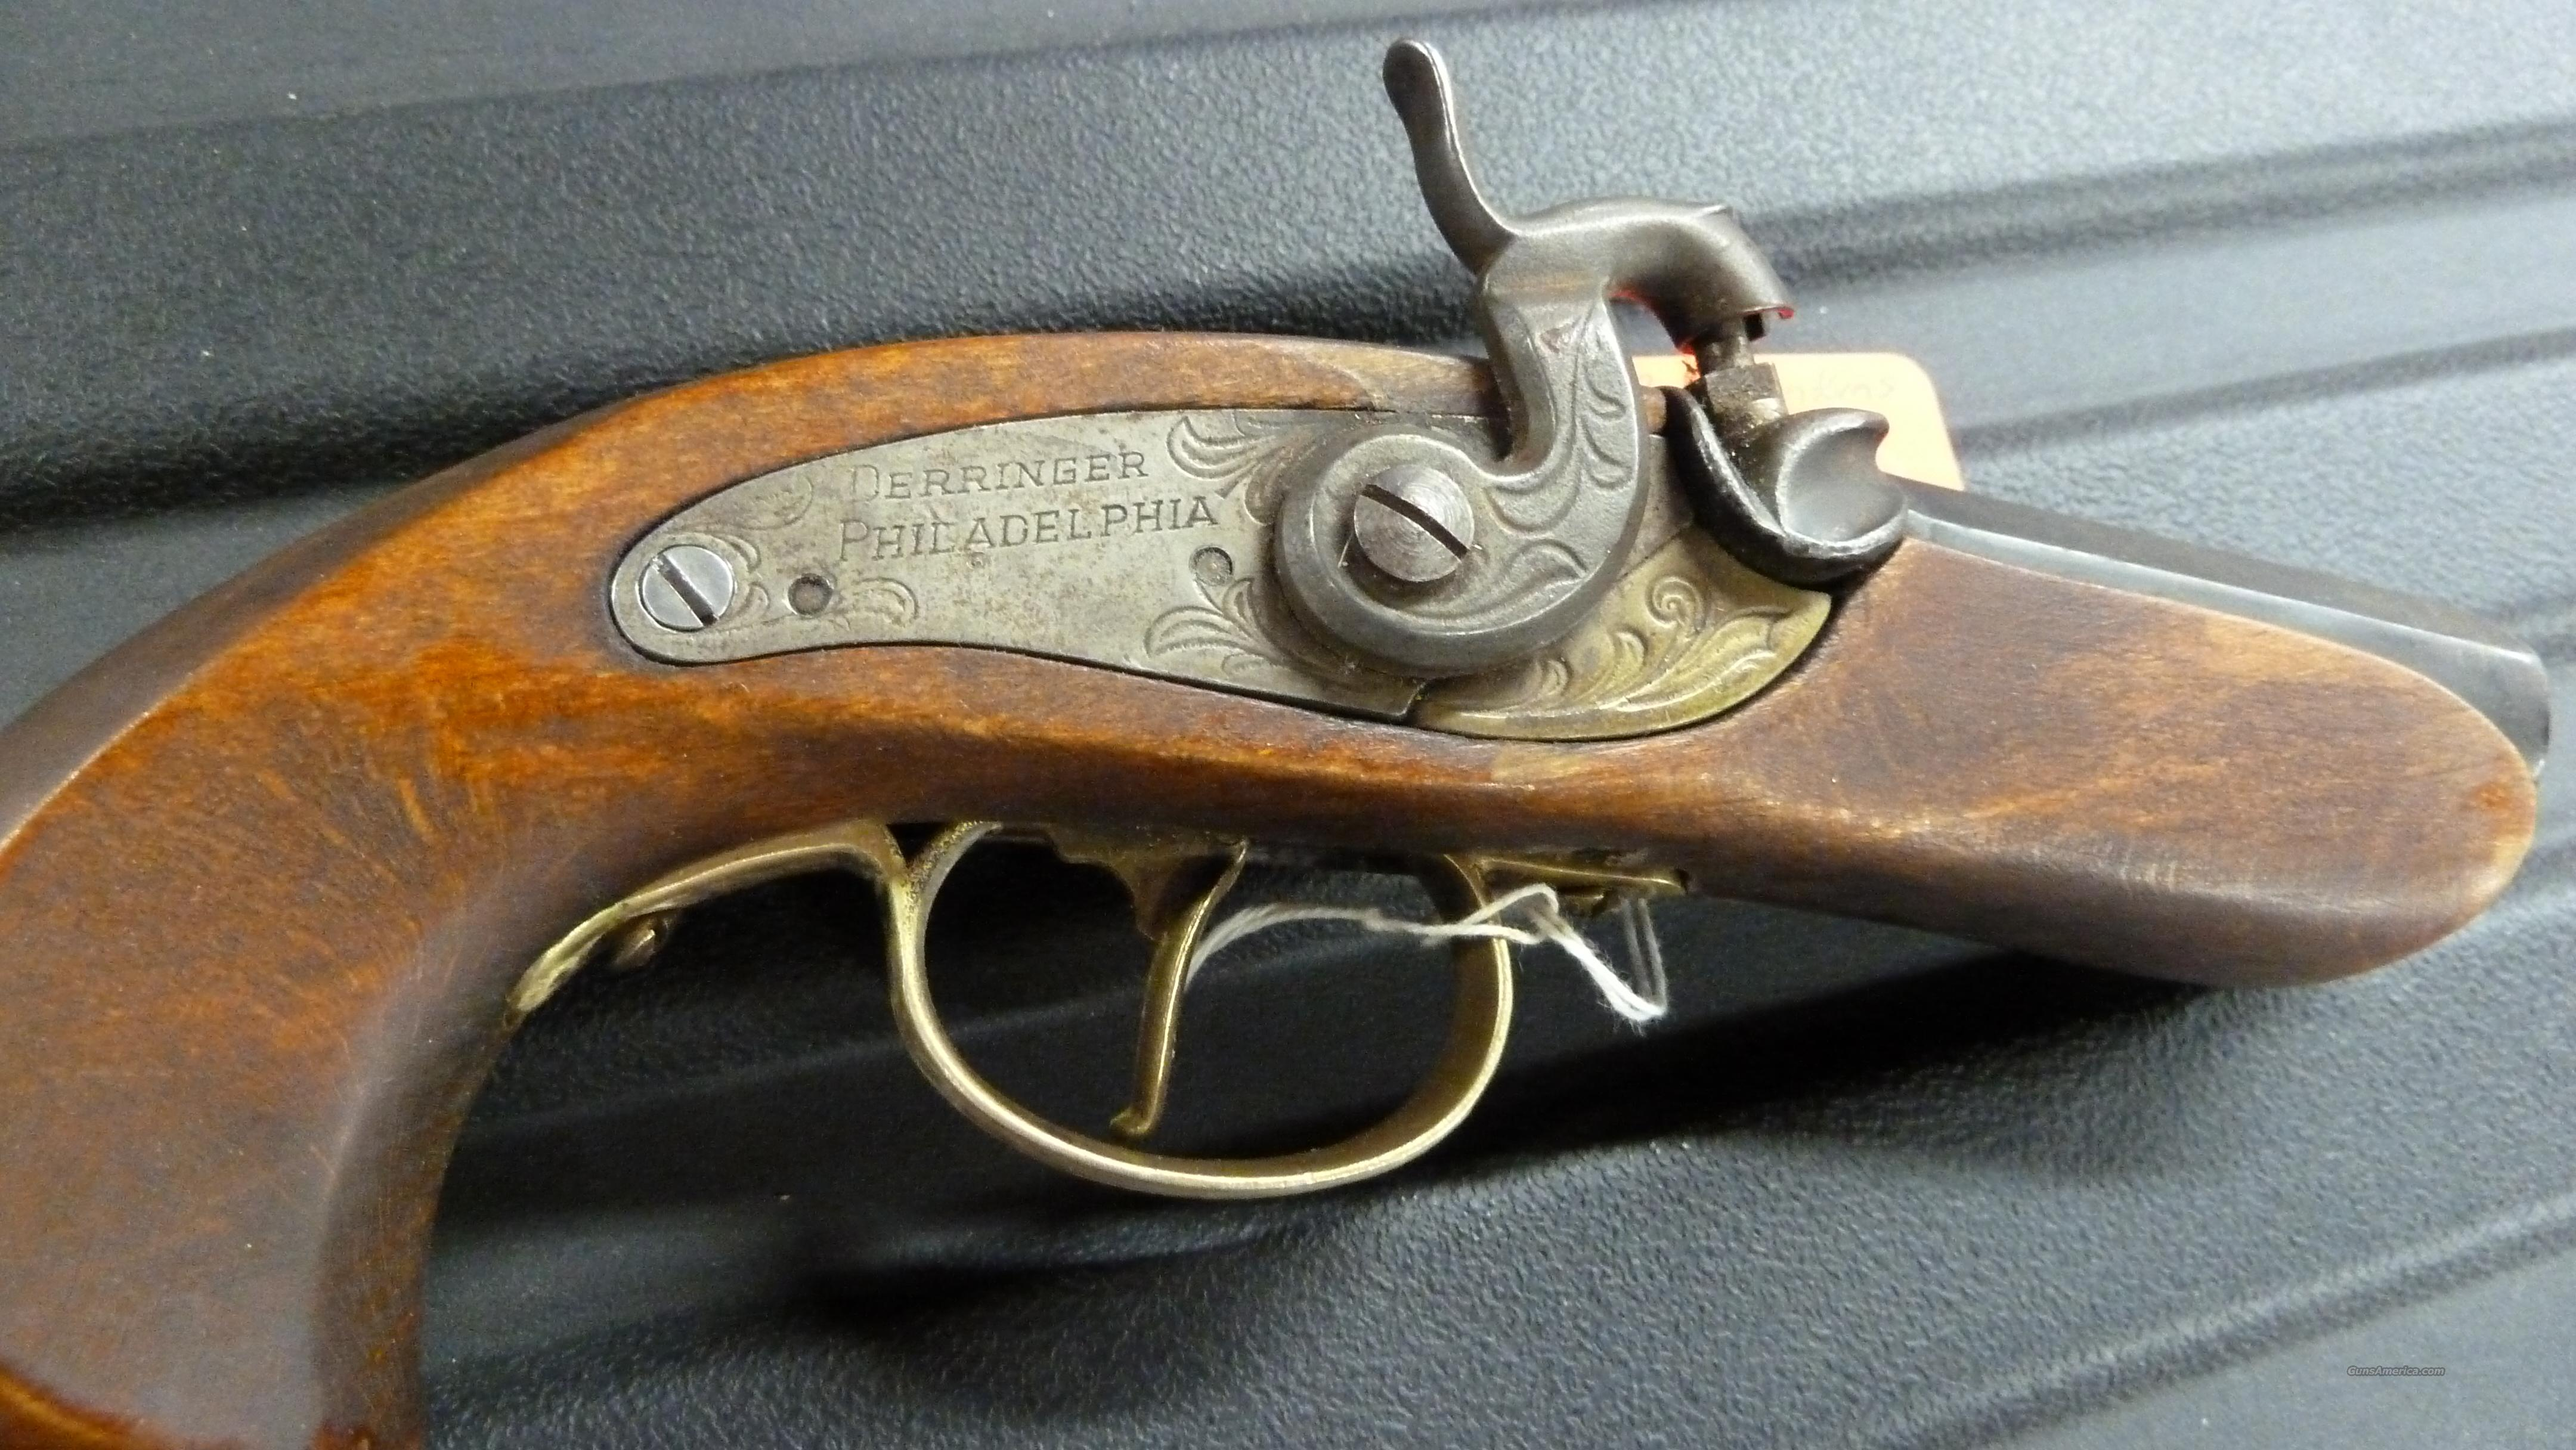 PHILADELPHIA DERRINGER .50 BLACK POWDER VINTAGE!   Guns > Pistols > Derringer Pre-1899